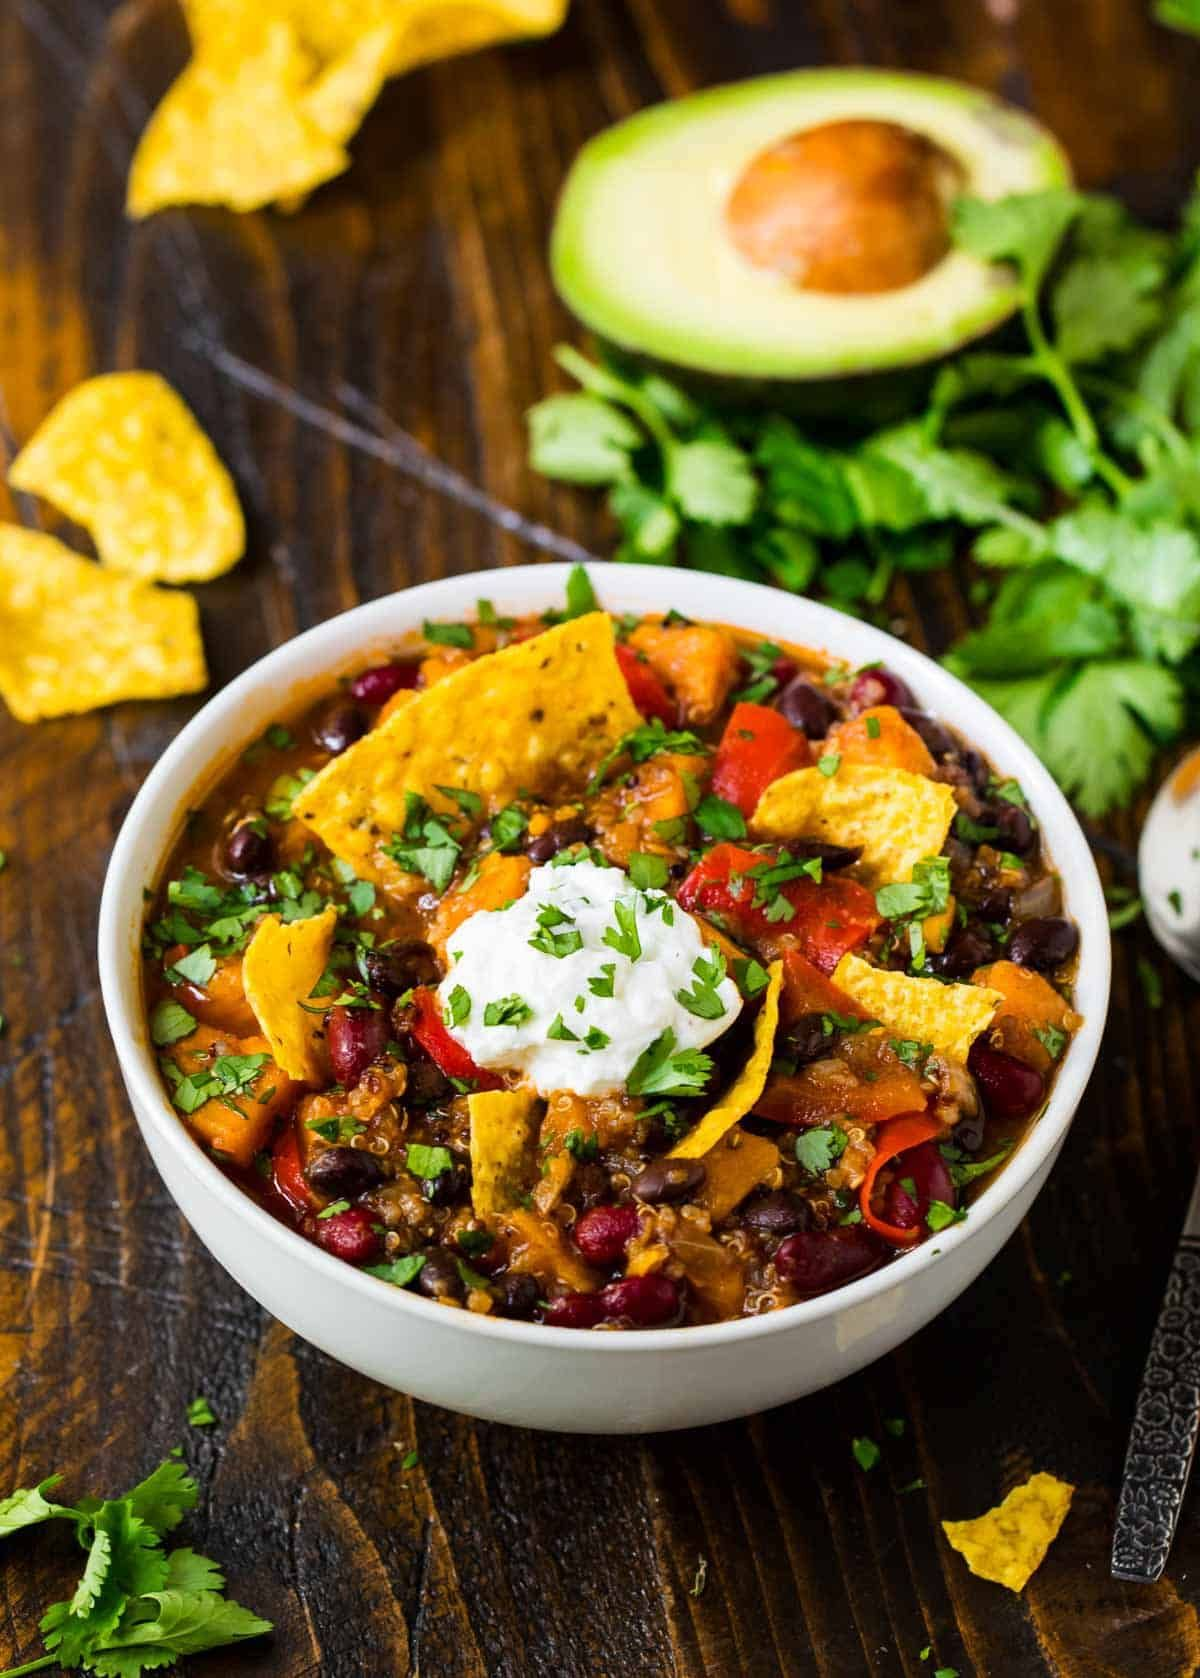 It's one of my favorite unofficial days of the year: the first chili recipe! This Instant Pot Vegetarian Chili made with canned beans, sweet potato, quinoa, and a rainbow of southwest spices is more than deserving of this year's #1 spot. It's rich and hearty, strikes an ideal balance between spicy and sweet, and, thanks to the Instant Pot, cooks in minutes instead of hours. If a single recipe concept could be extended to an entire food group, chili would have my top vote. With all of its ... #veggiechilirecipe